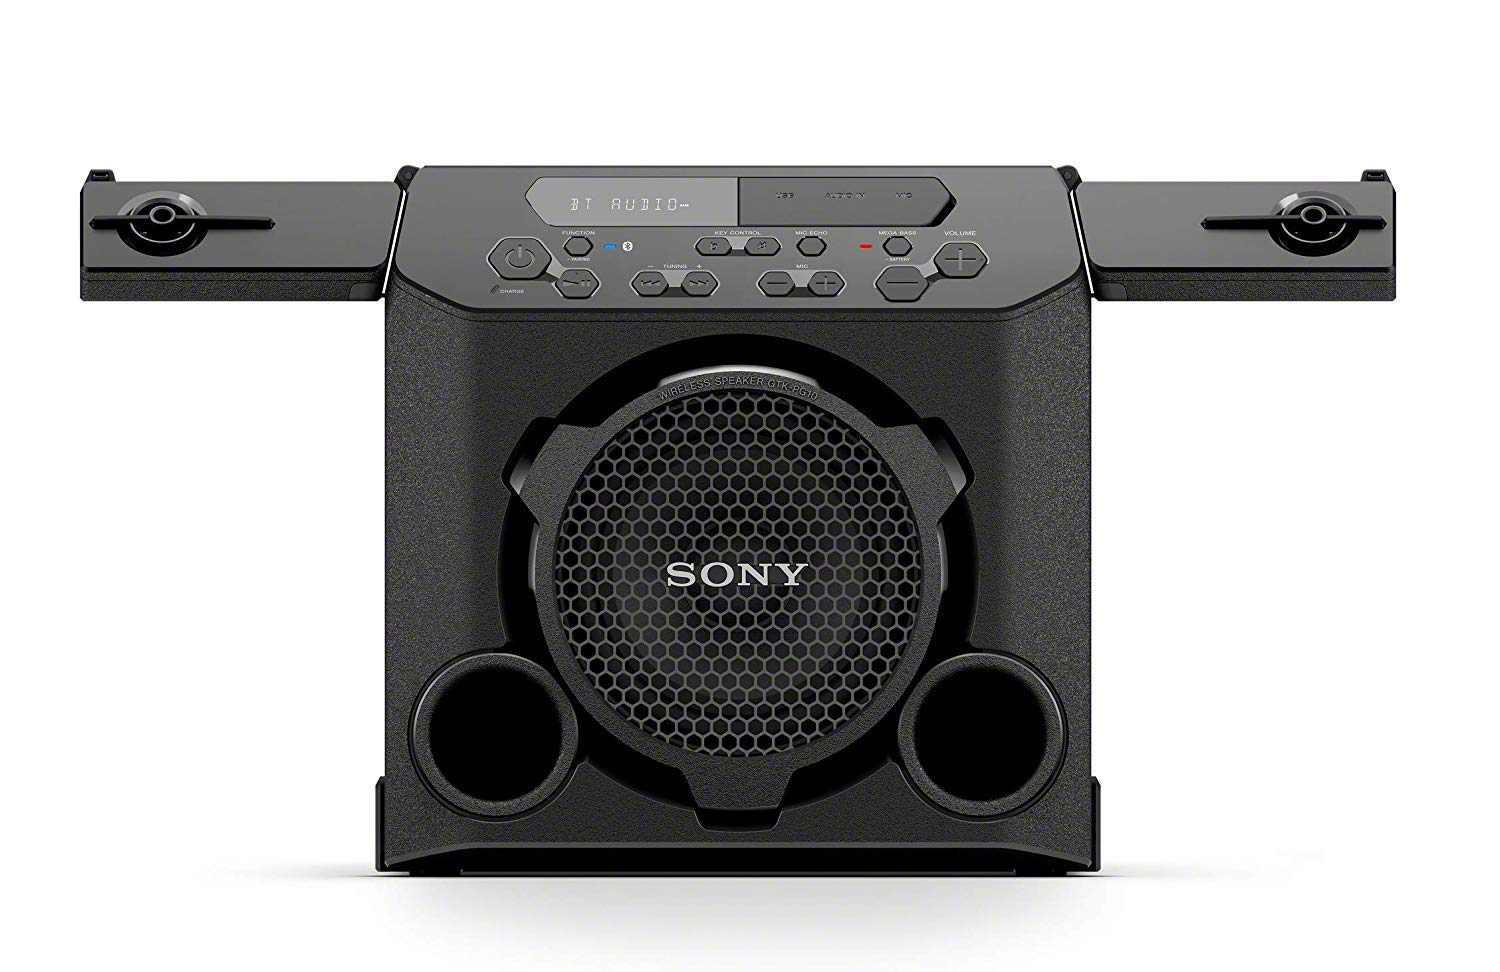 Sony GTK-PG10 Portable Bluetooth Speaker: Wireless Indoor / Outdoor Bluetooth Speakers - Compact Party Stereo System with Cup Holders - Travel Speaker with FM Radio Tuner, Microphone Jack, USB Port